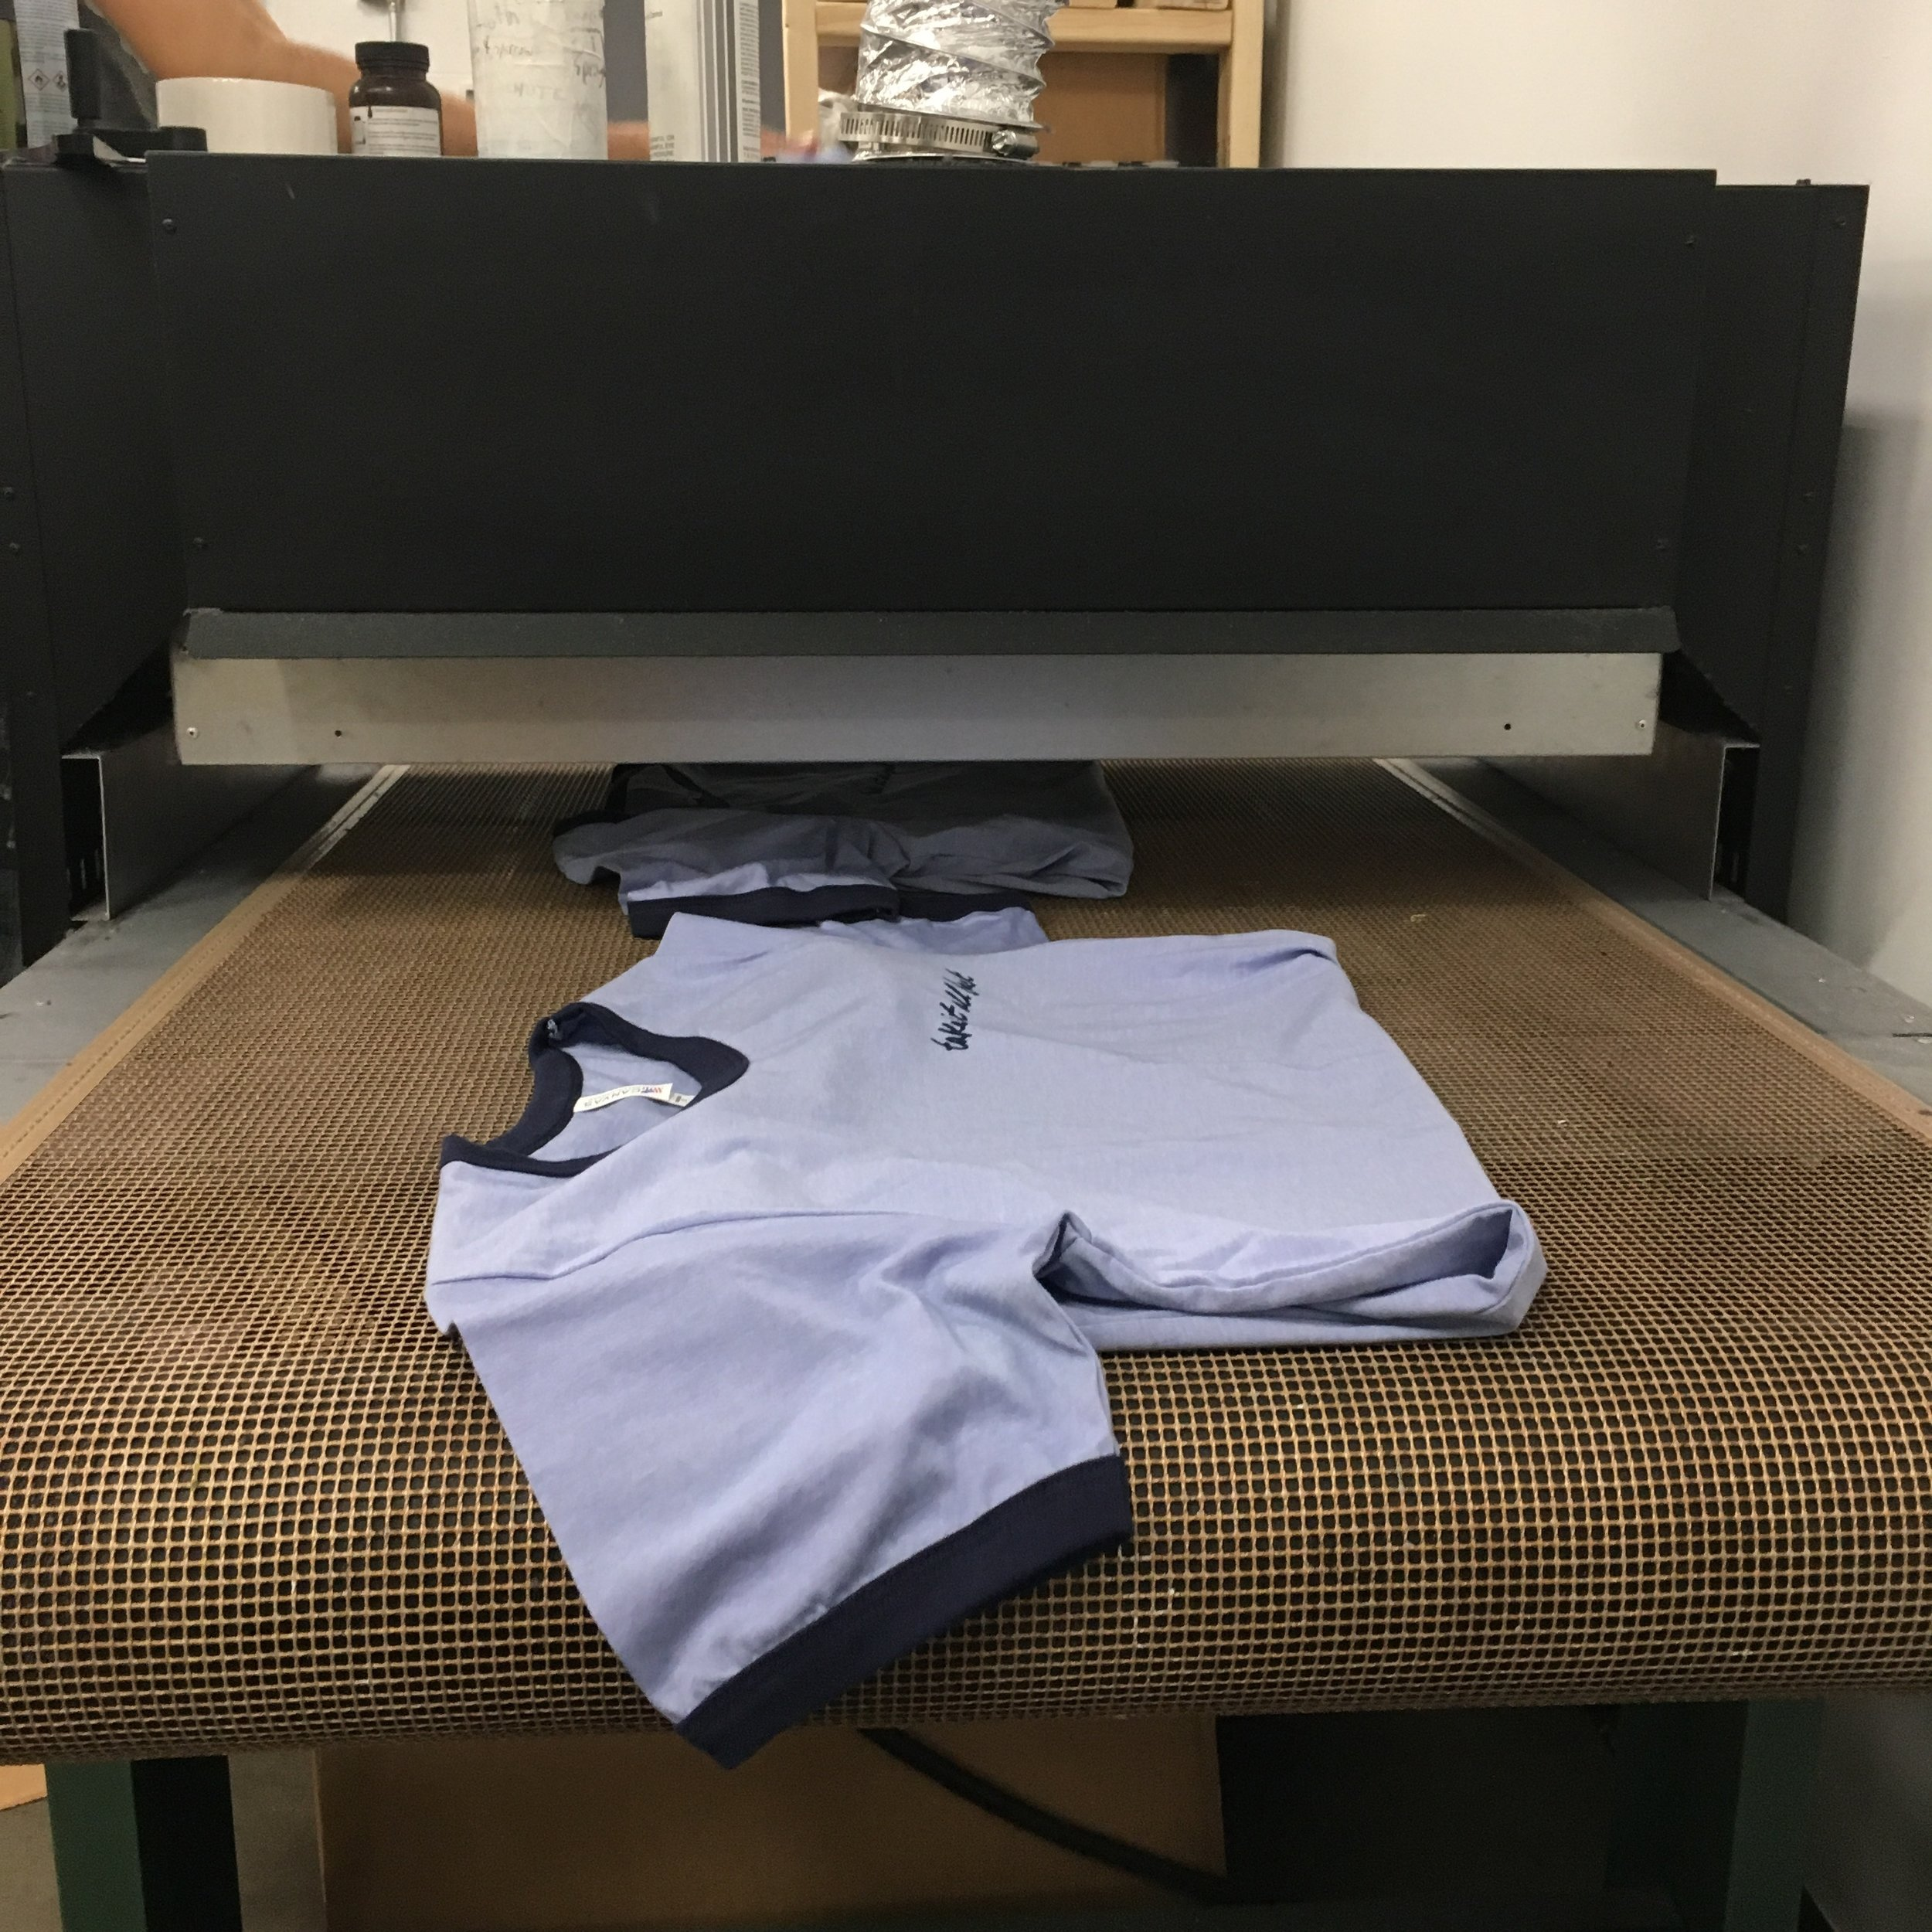 Shirts run through the dryer on a slow-moving conveyor belt.